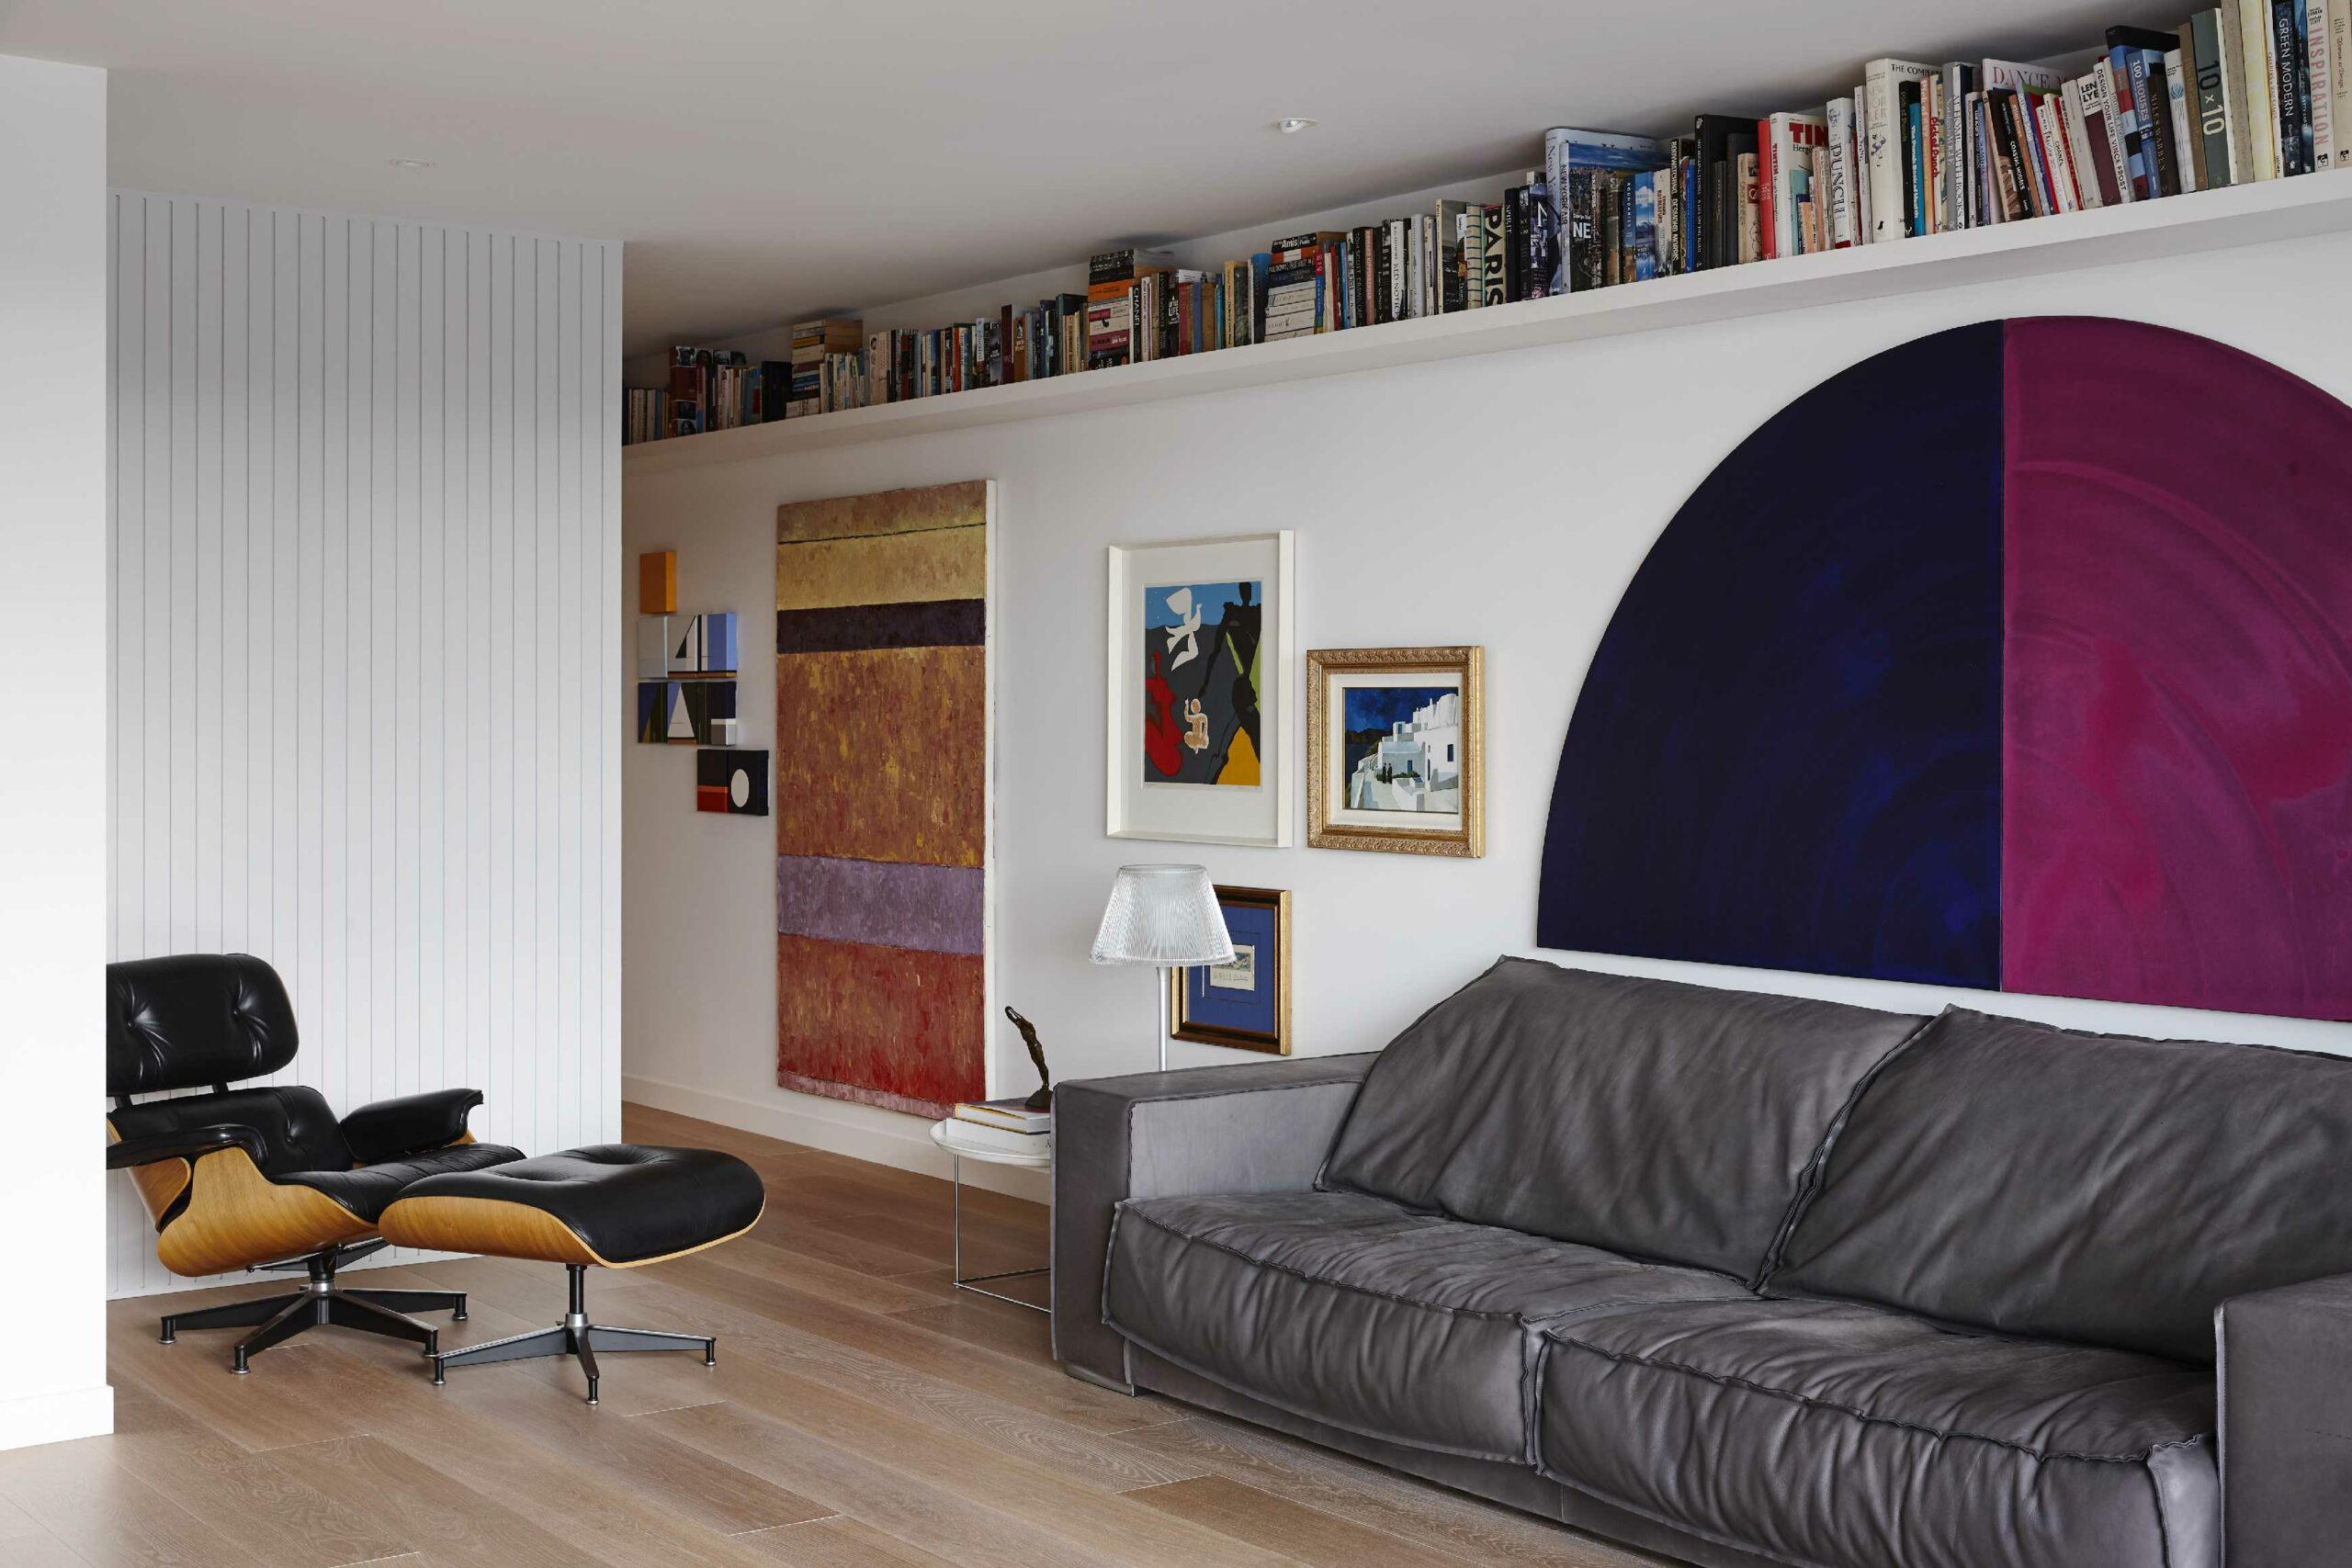 Living area with art